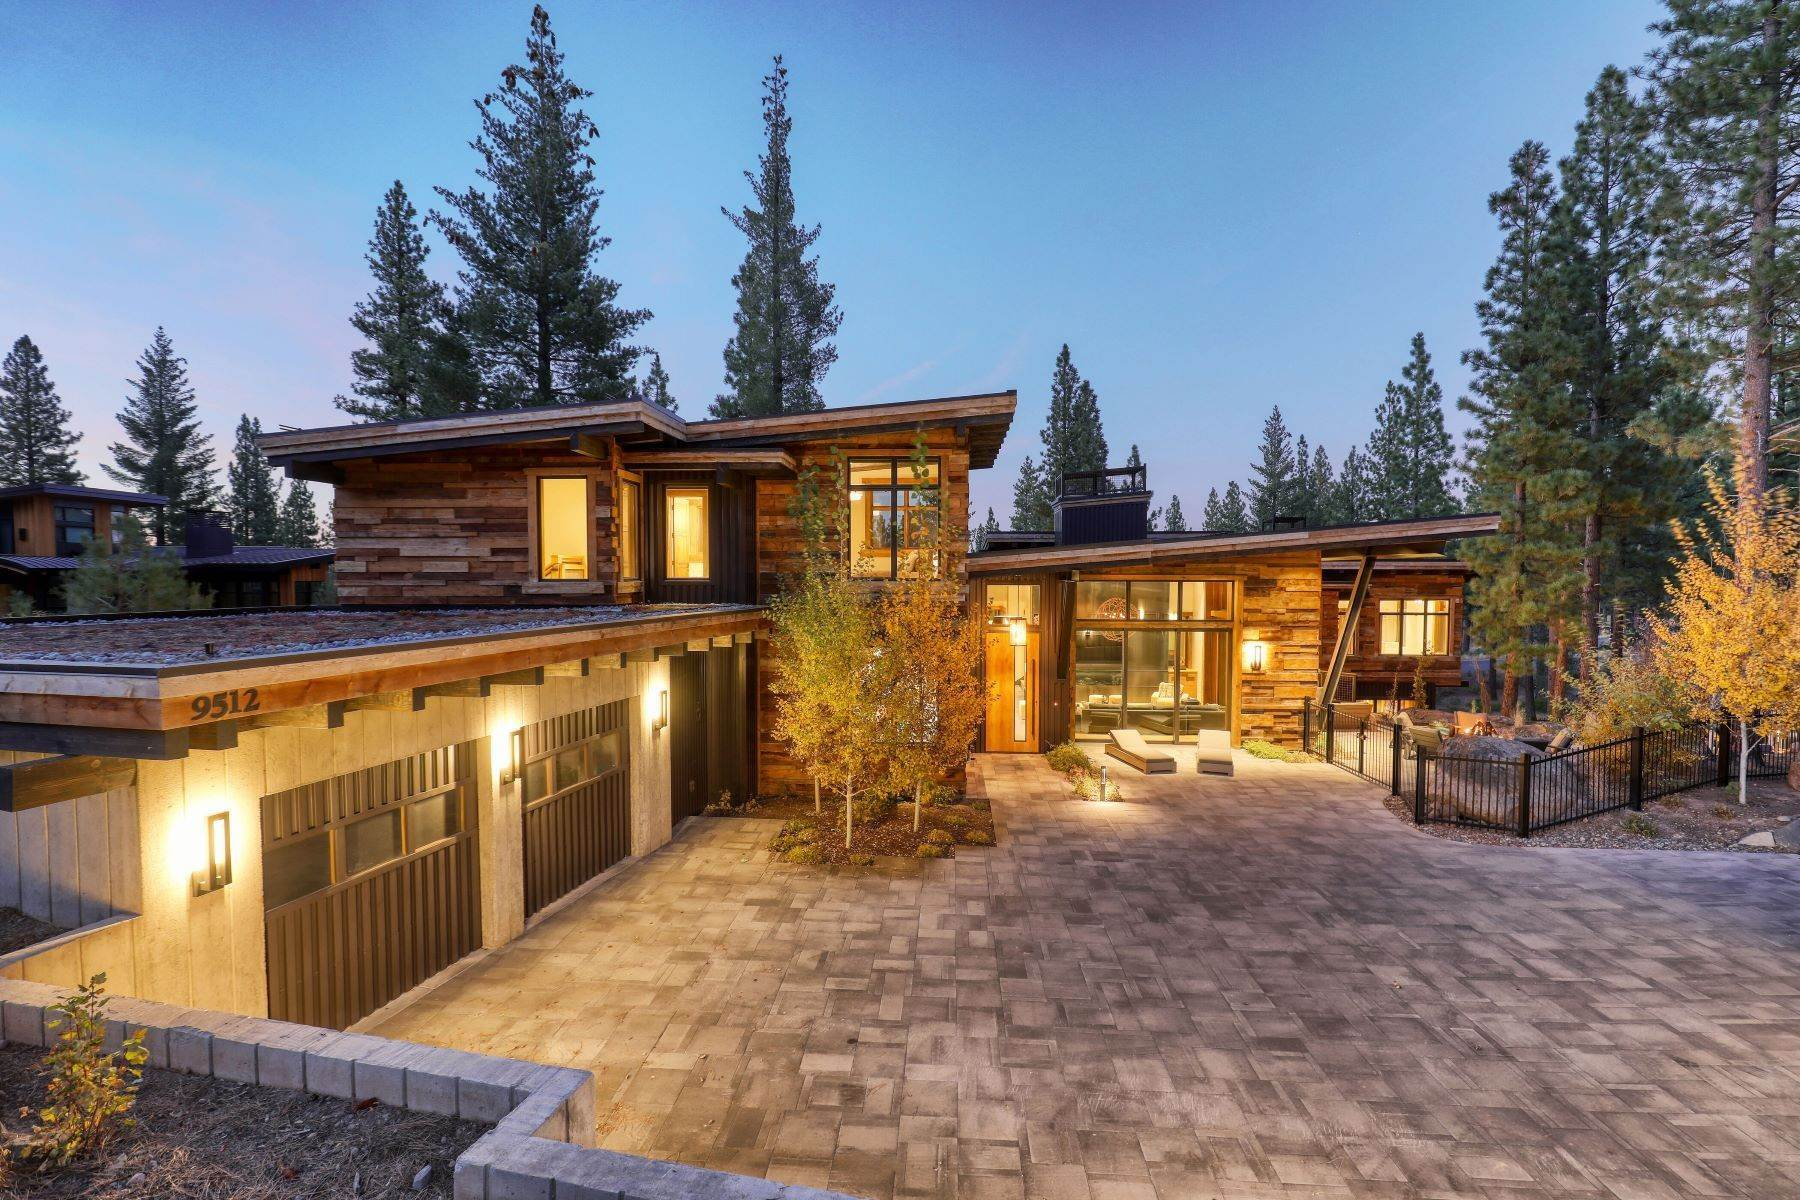 Property for Active at 9512 Wawona Court, Truckee, CA 96161 9512 Wawona Court Truckee, California 96161 United States